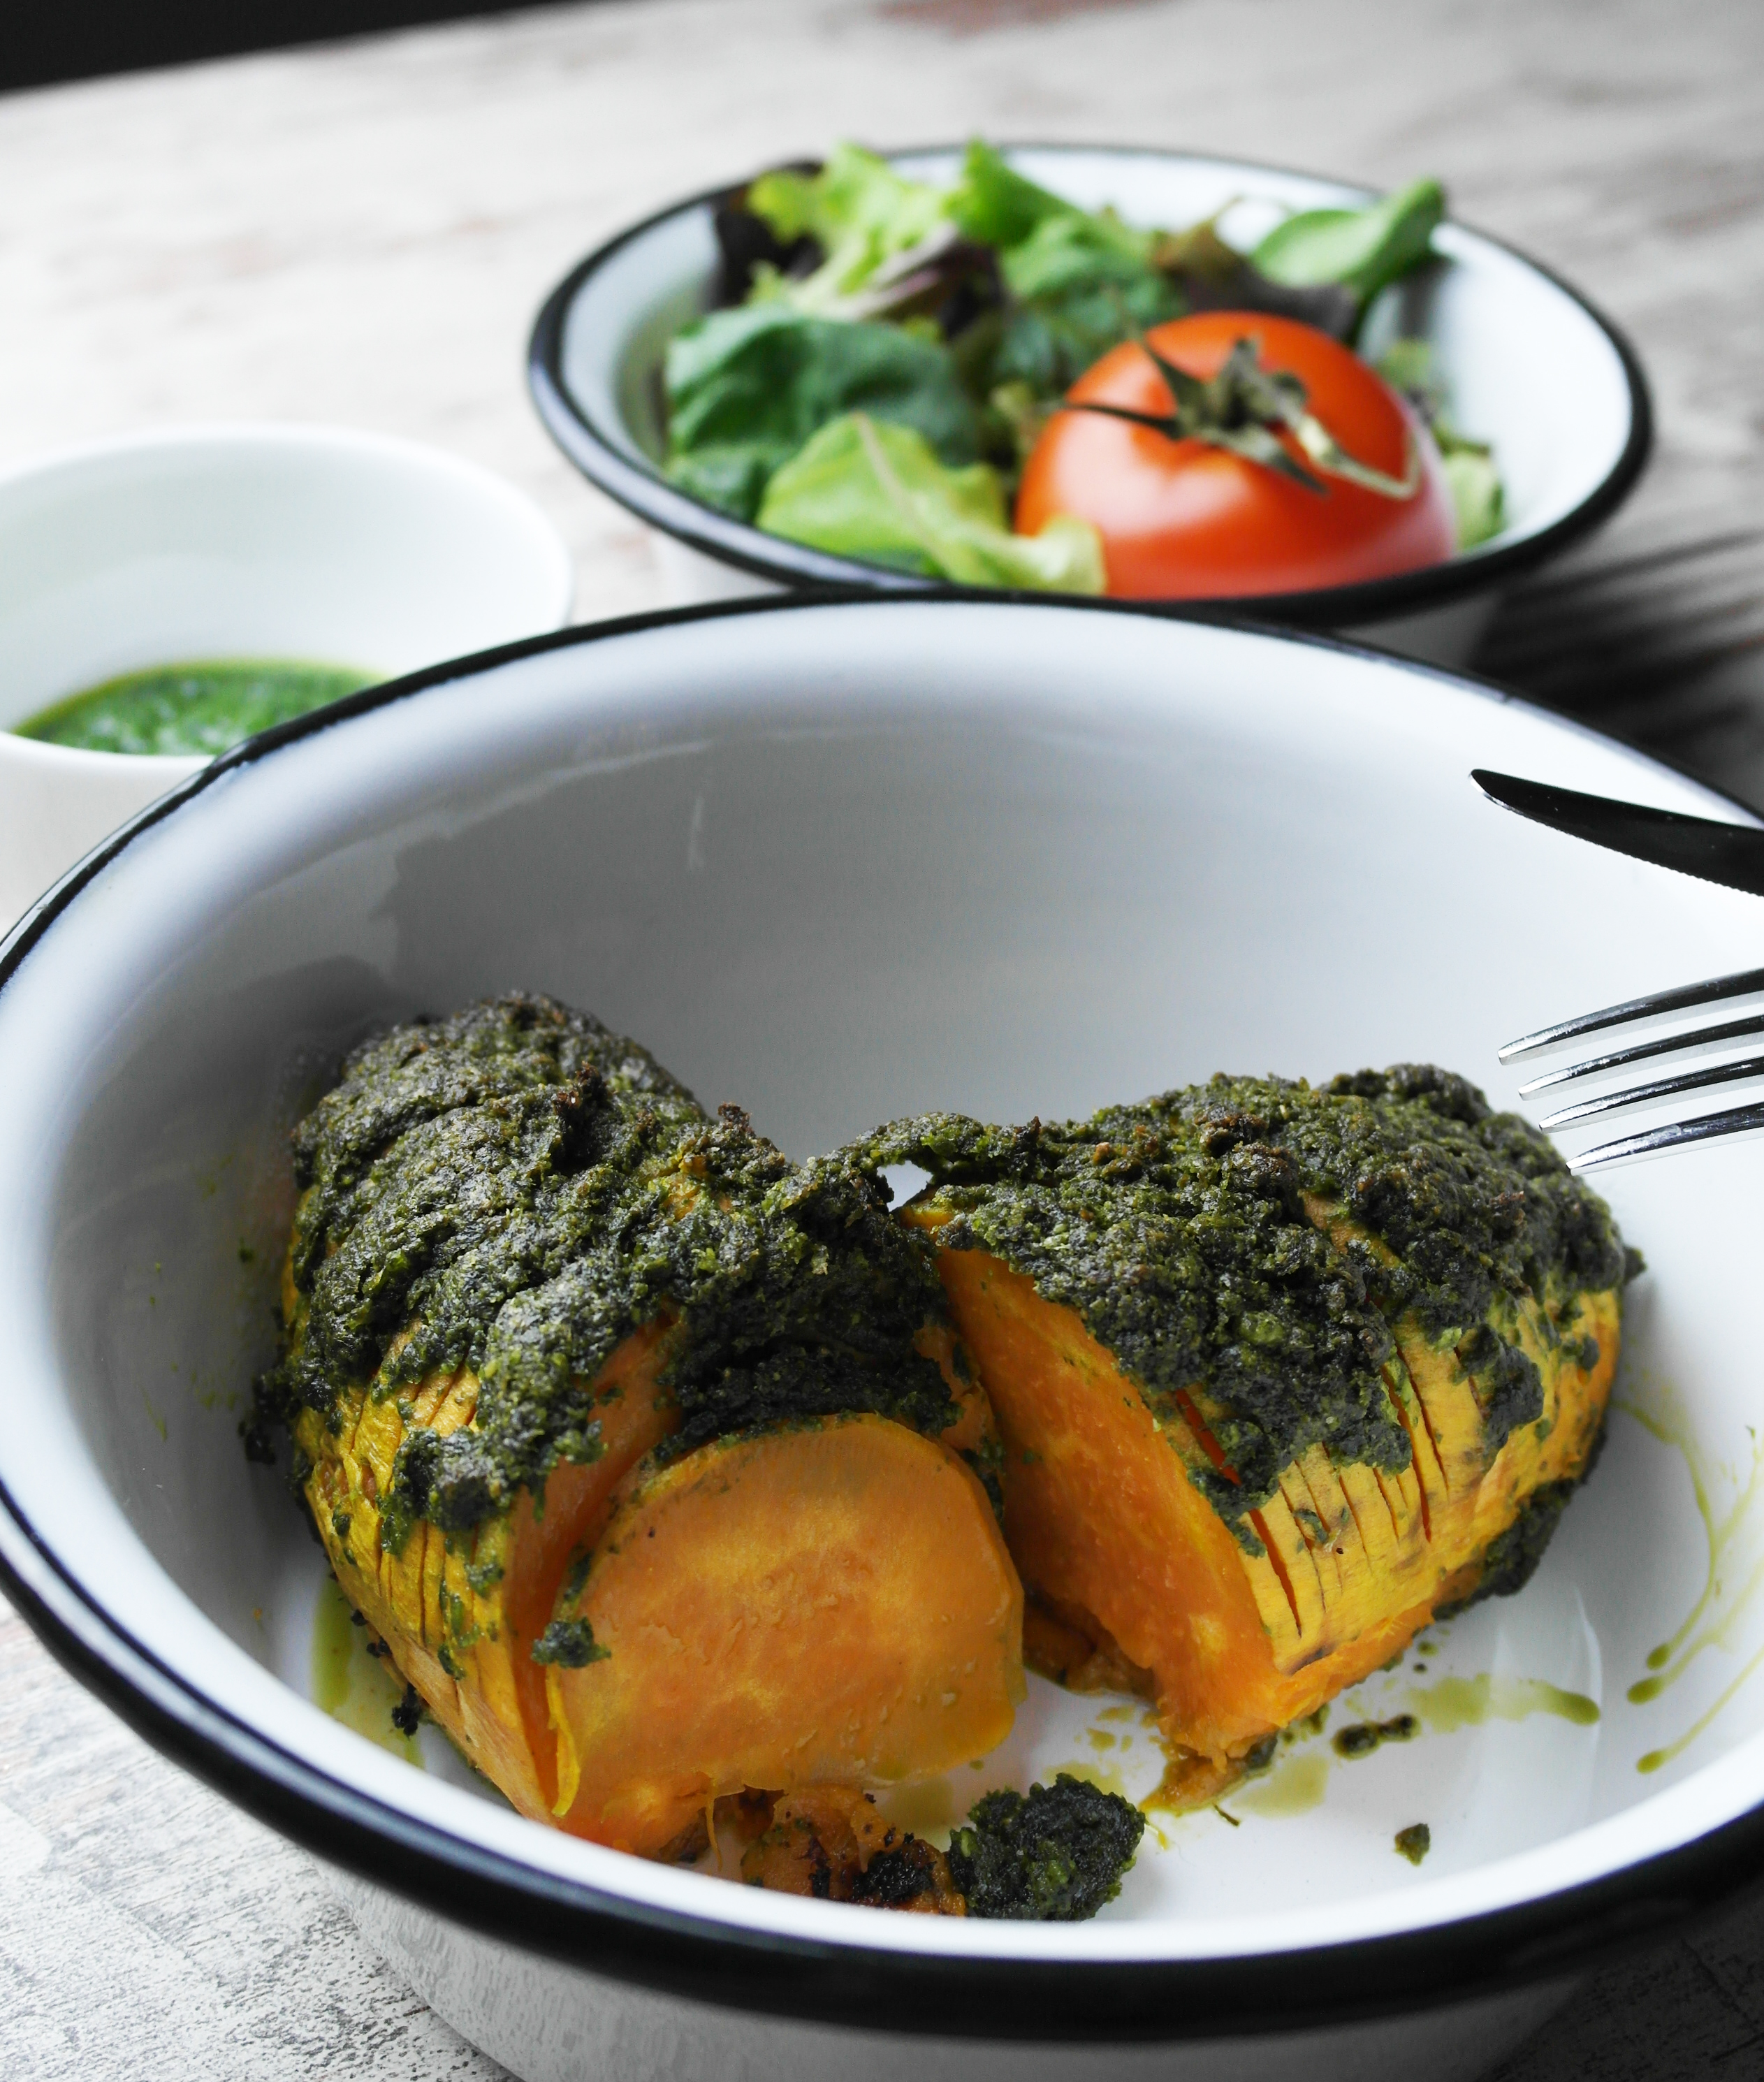 süßkartoffel mit veganem bärlauch-pesto | sweet potato with vegan wild garlic pesto | vegan